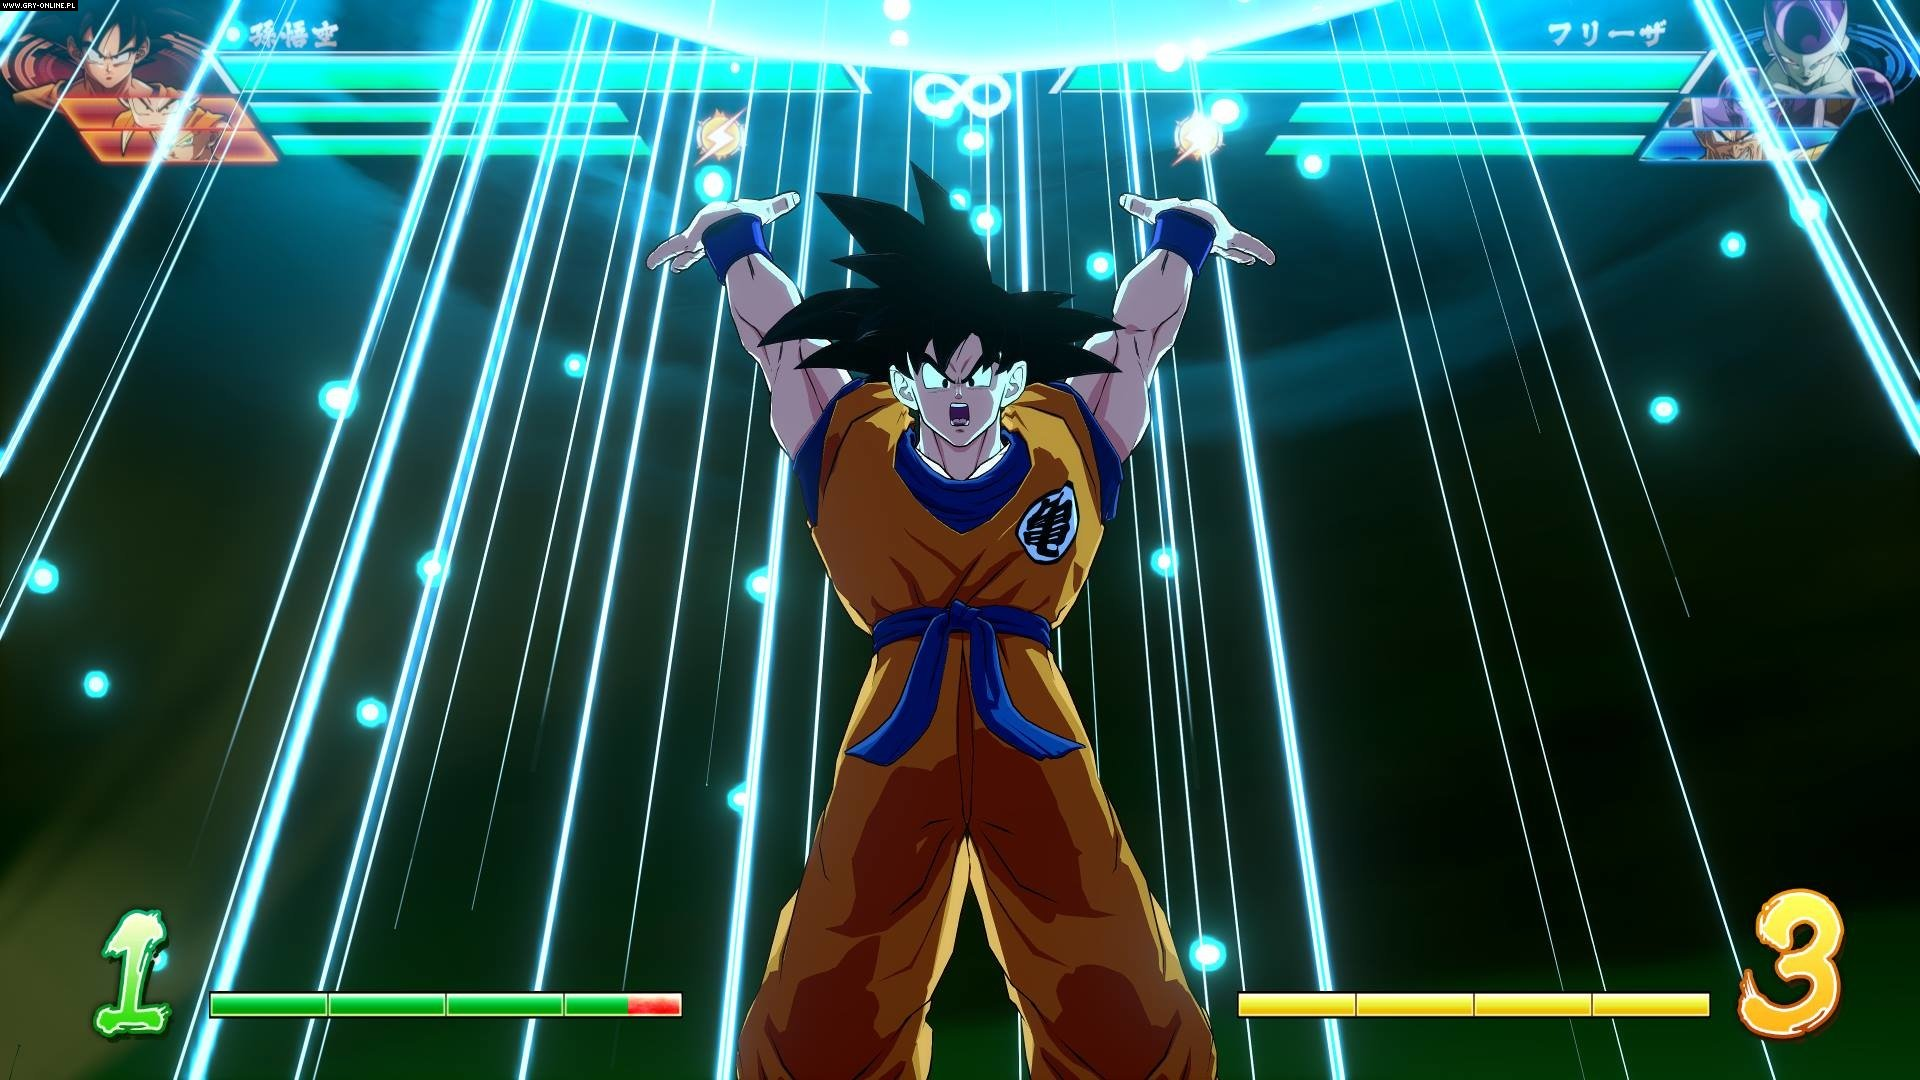 Dragon Ball FighterZ PC, PS4, XONE, Switch Gry Screen 32/230, Arc System Works, Bandai Namco Entertainment